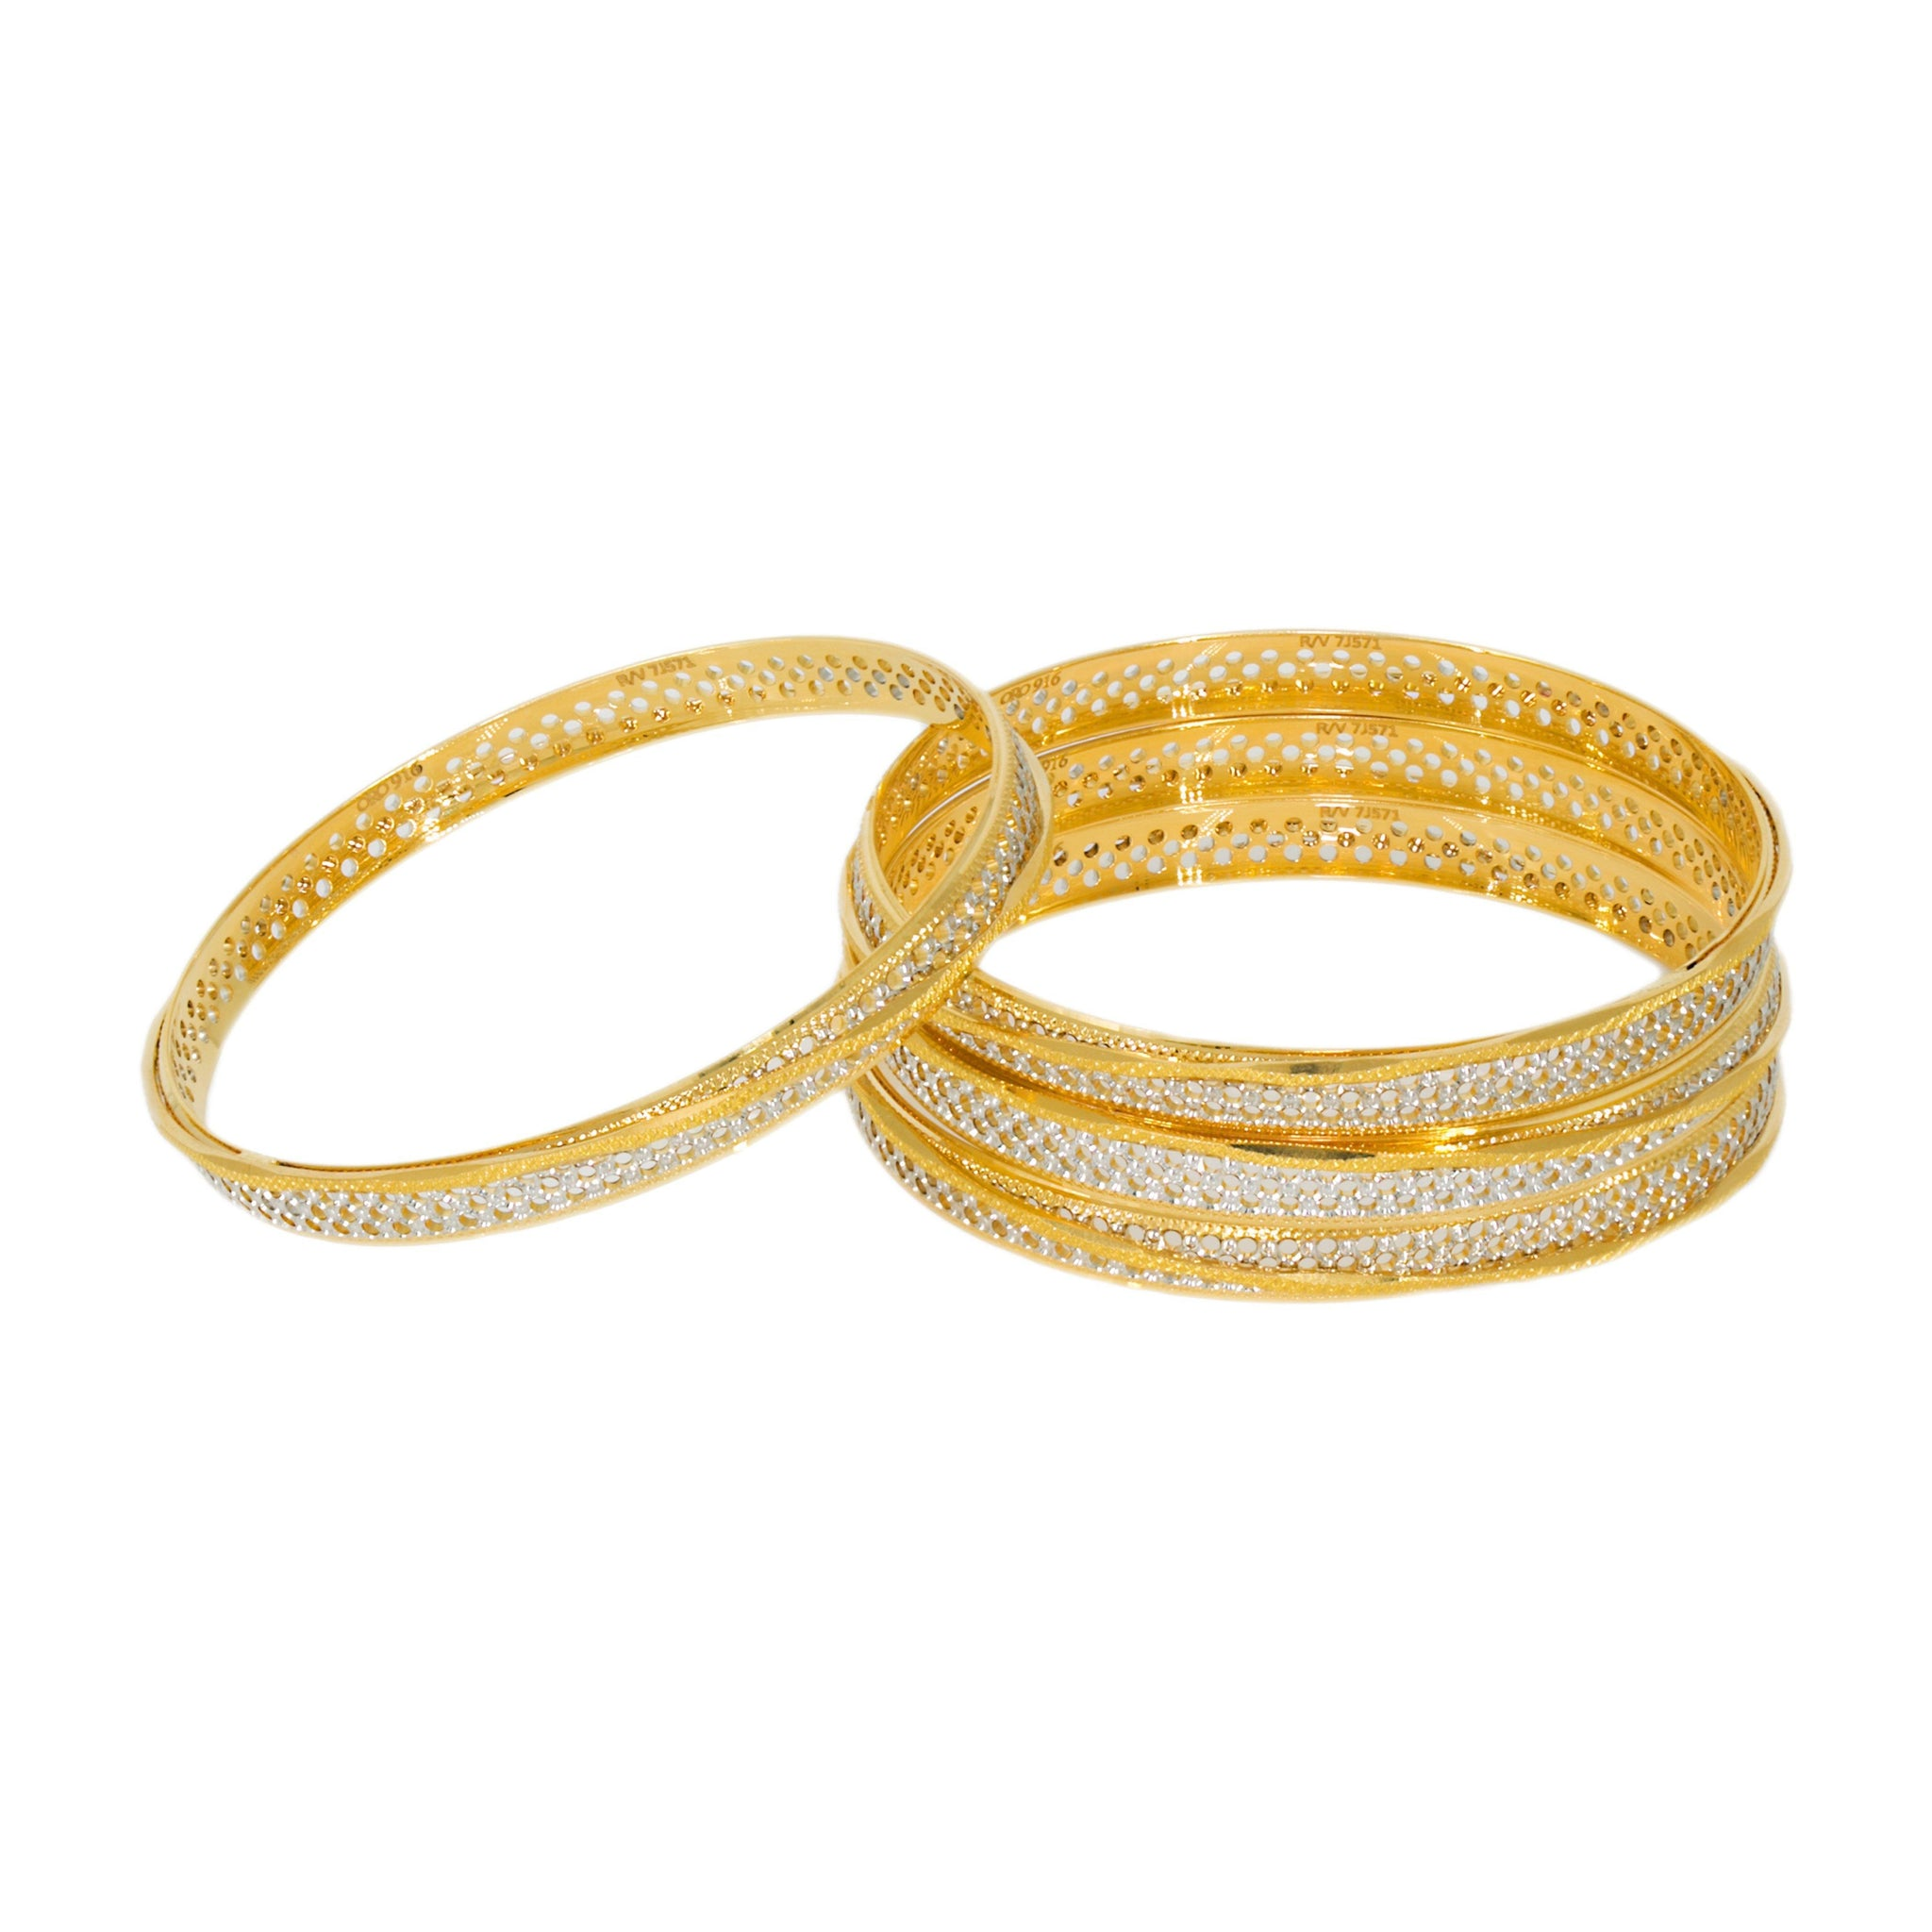 jewellery kolkata chand shop jeweller bangles gold manik